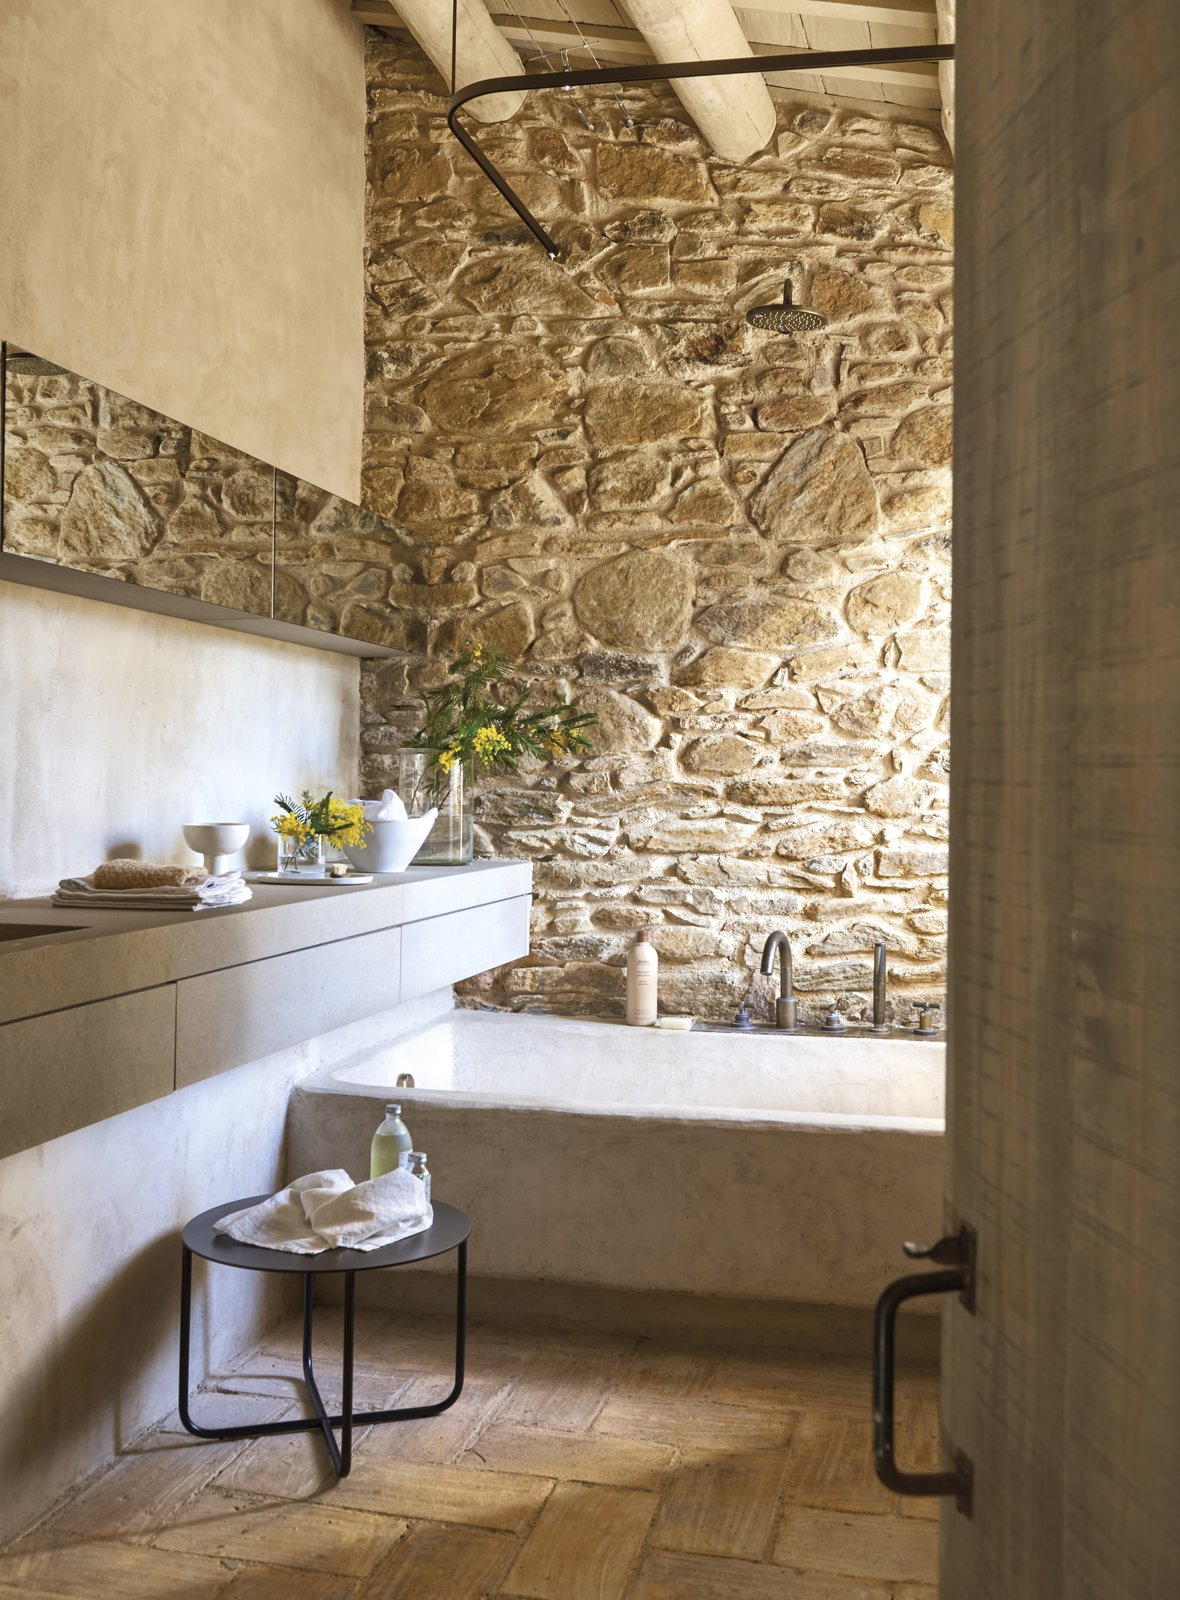 the-allstone-bathroom-furniture-collection-designed-by-joan-lao-design-studio.jpg